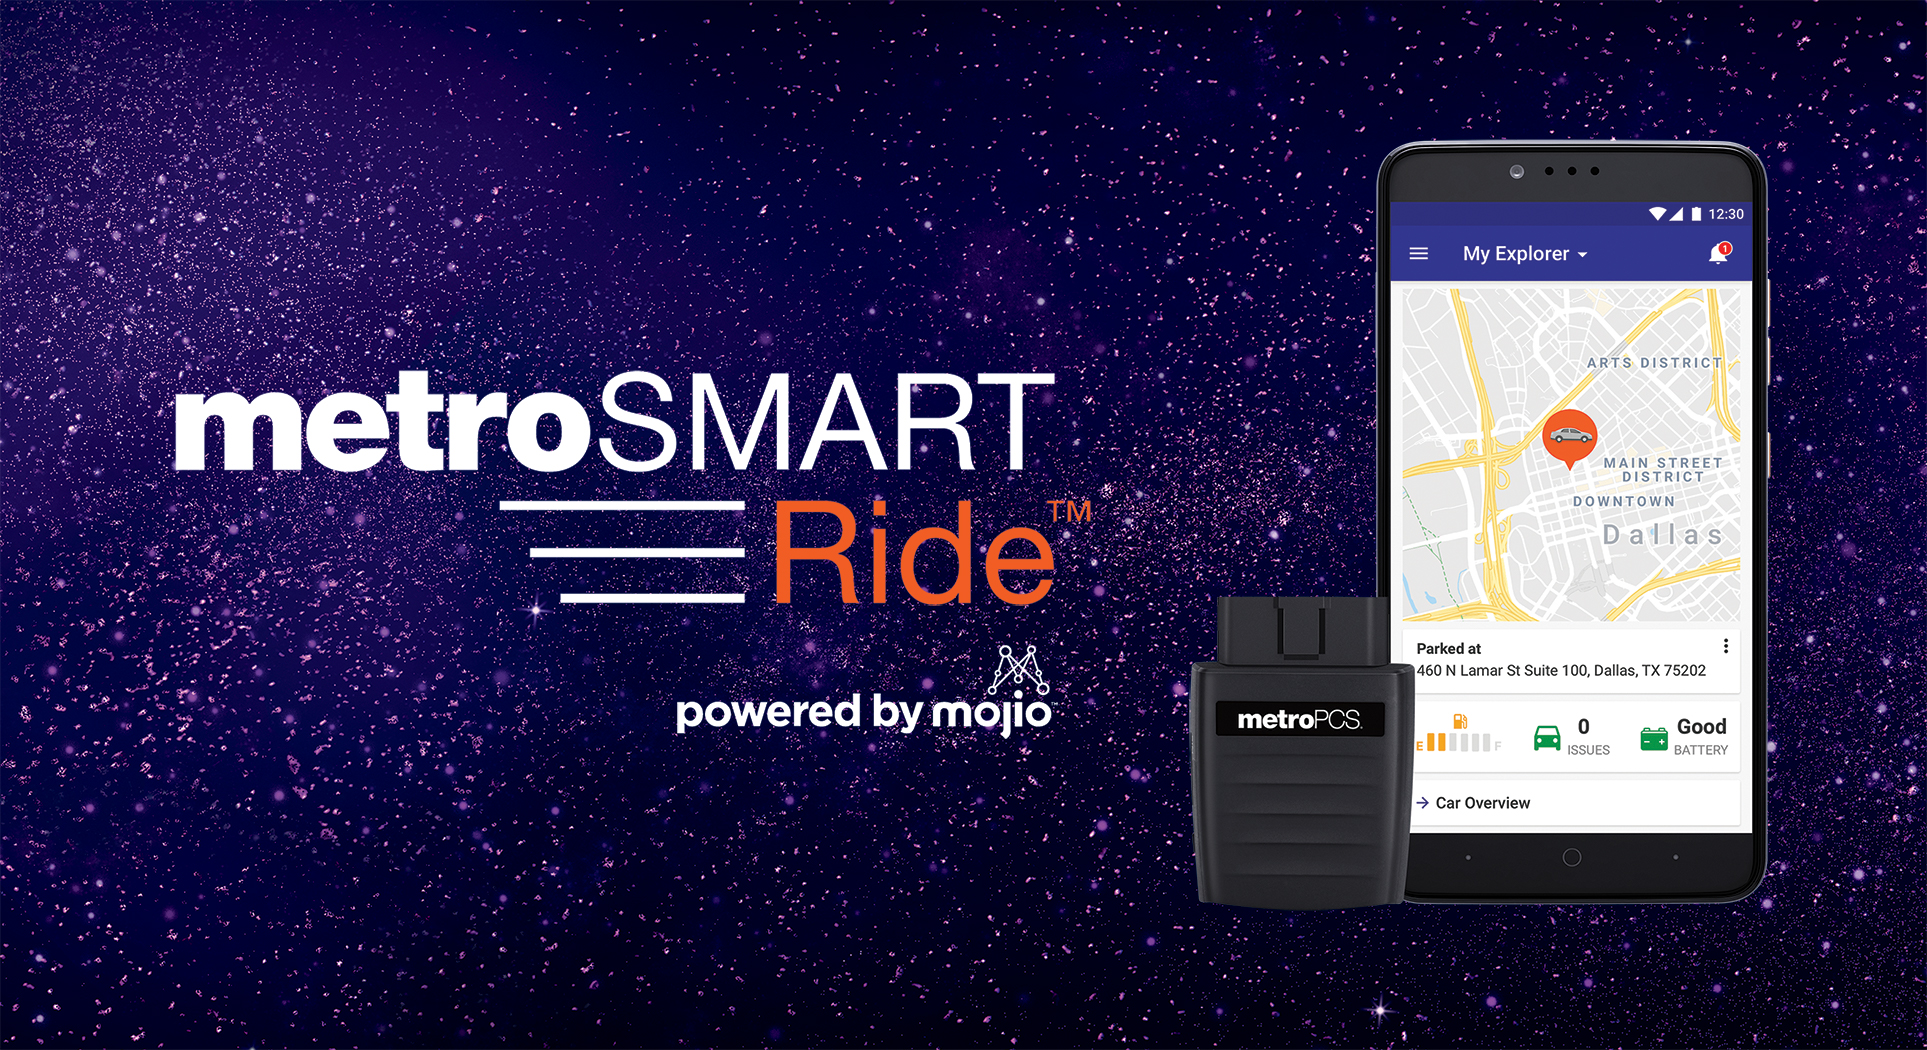 MetroSMART Ride powered by Mojio for MetroPCS